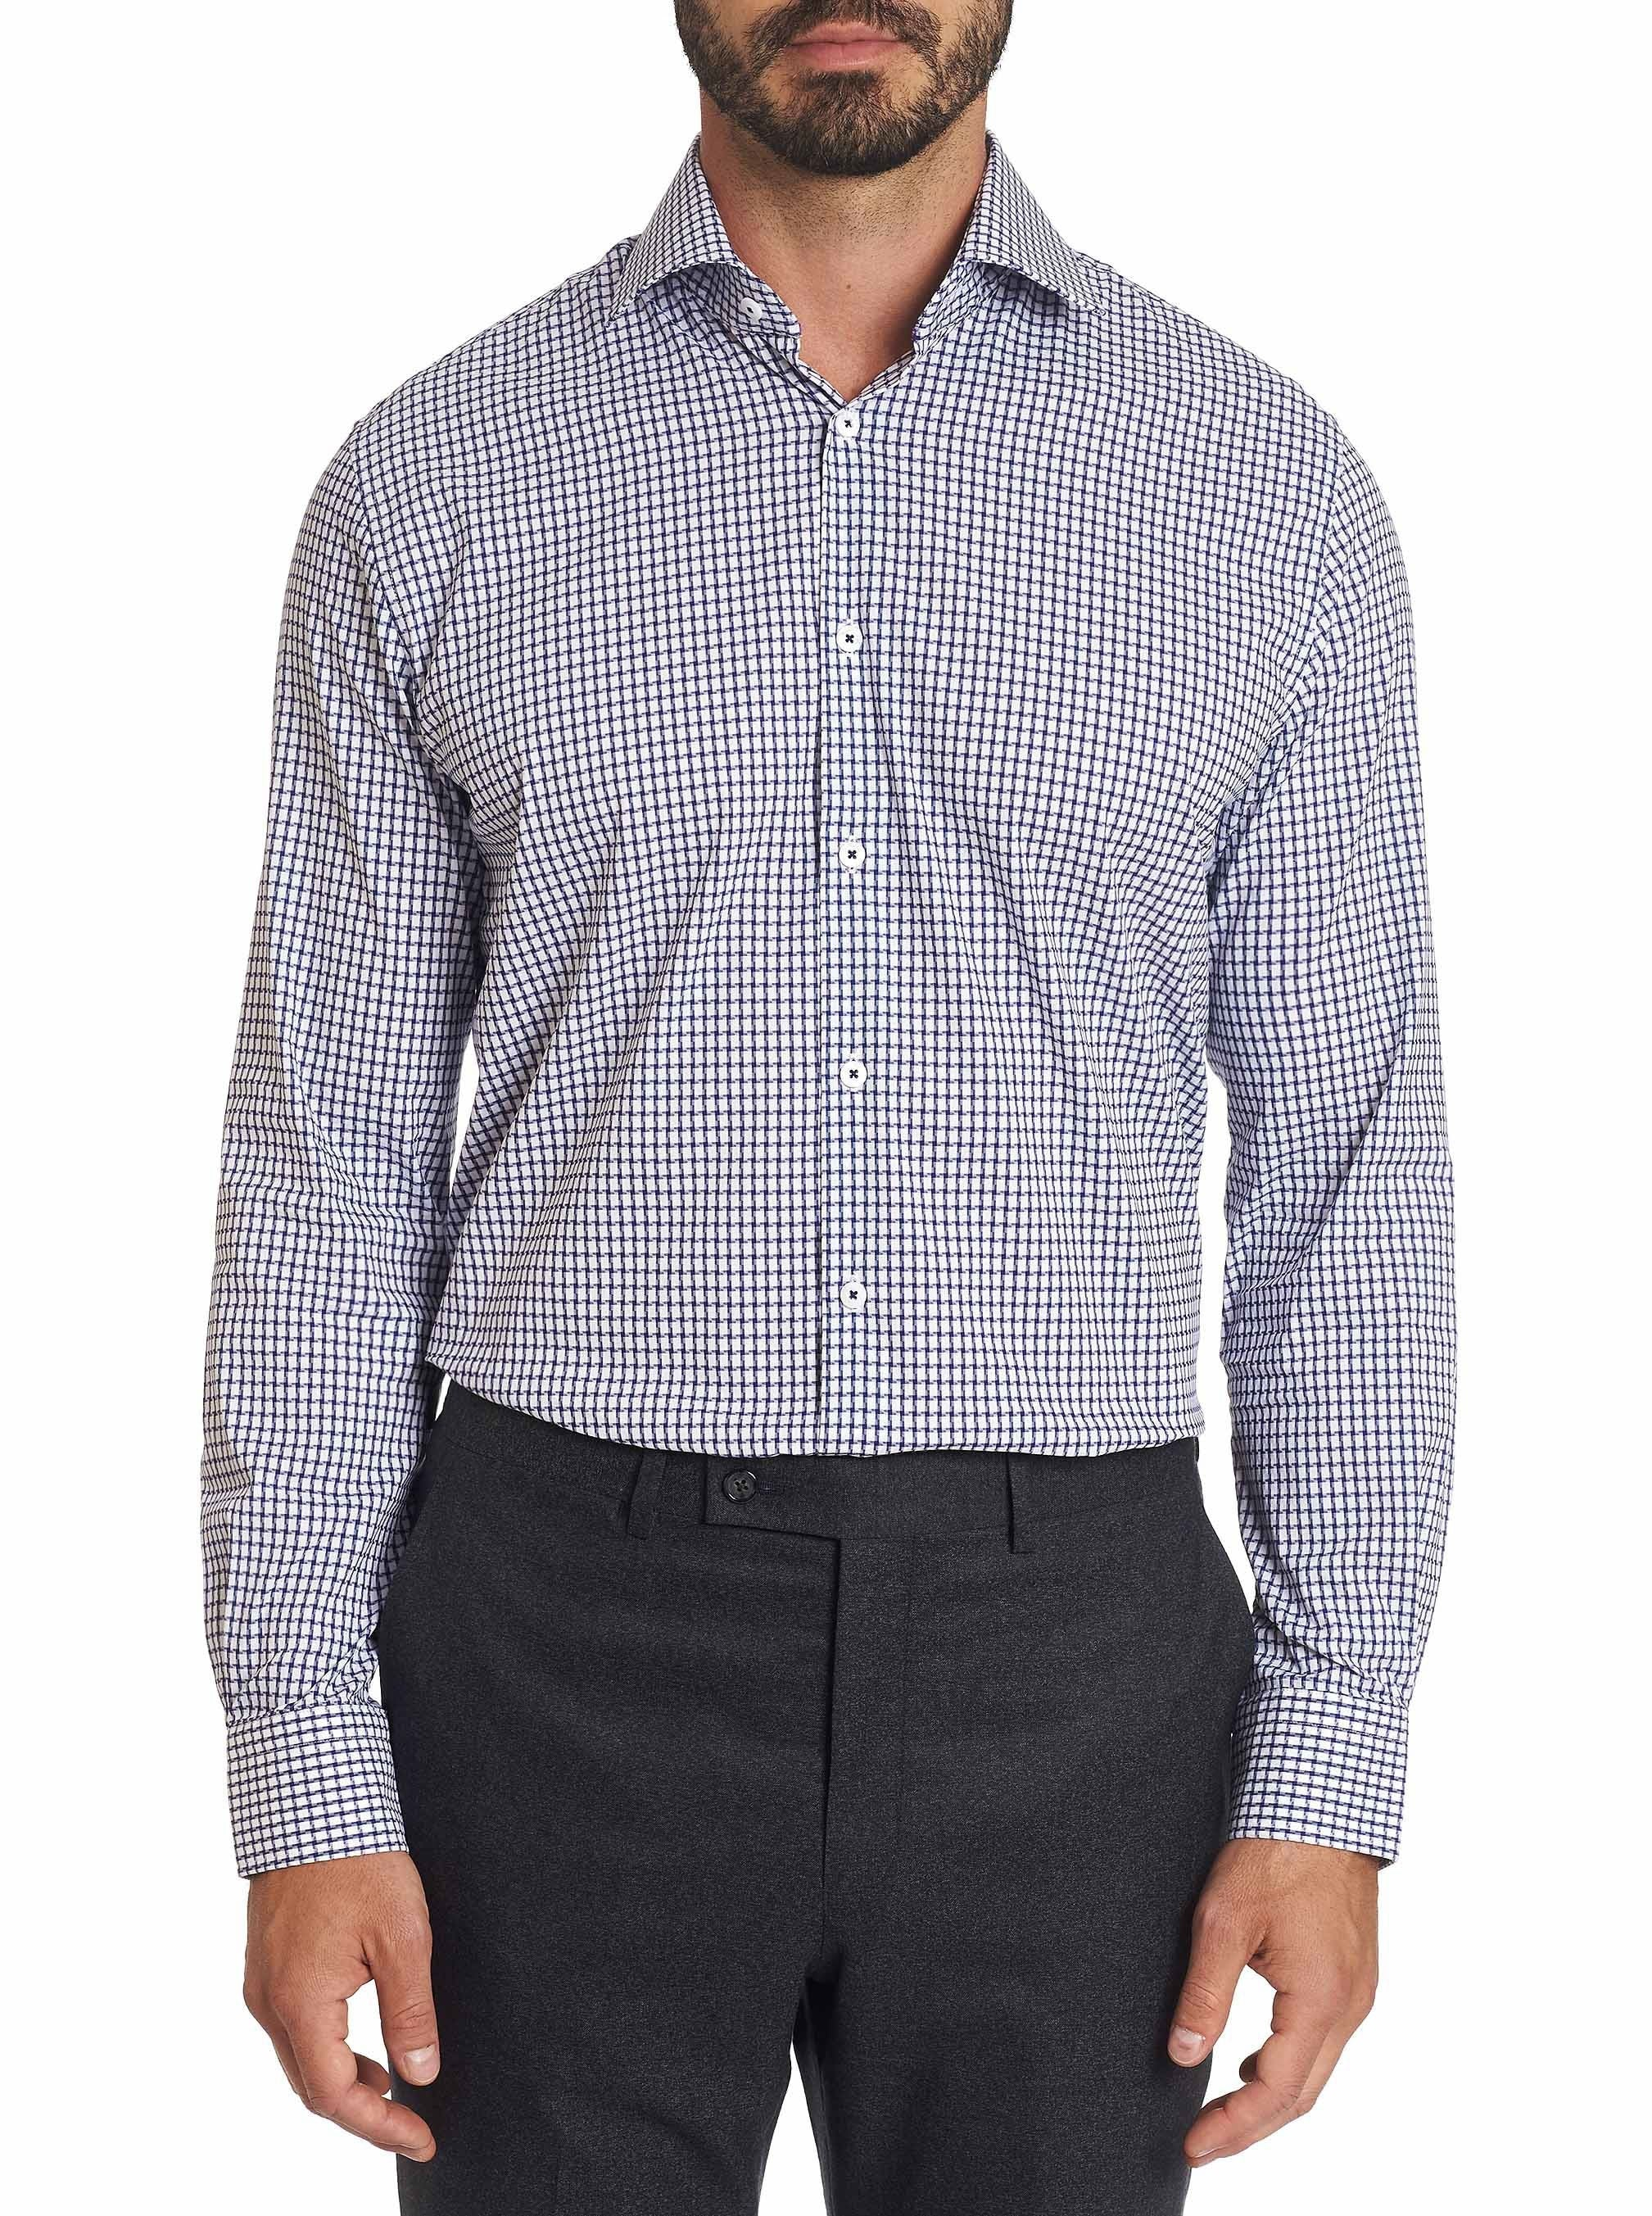 Robert Graham - Acton - Blue Dress Shirt